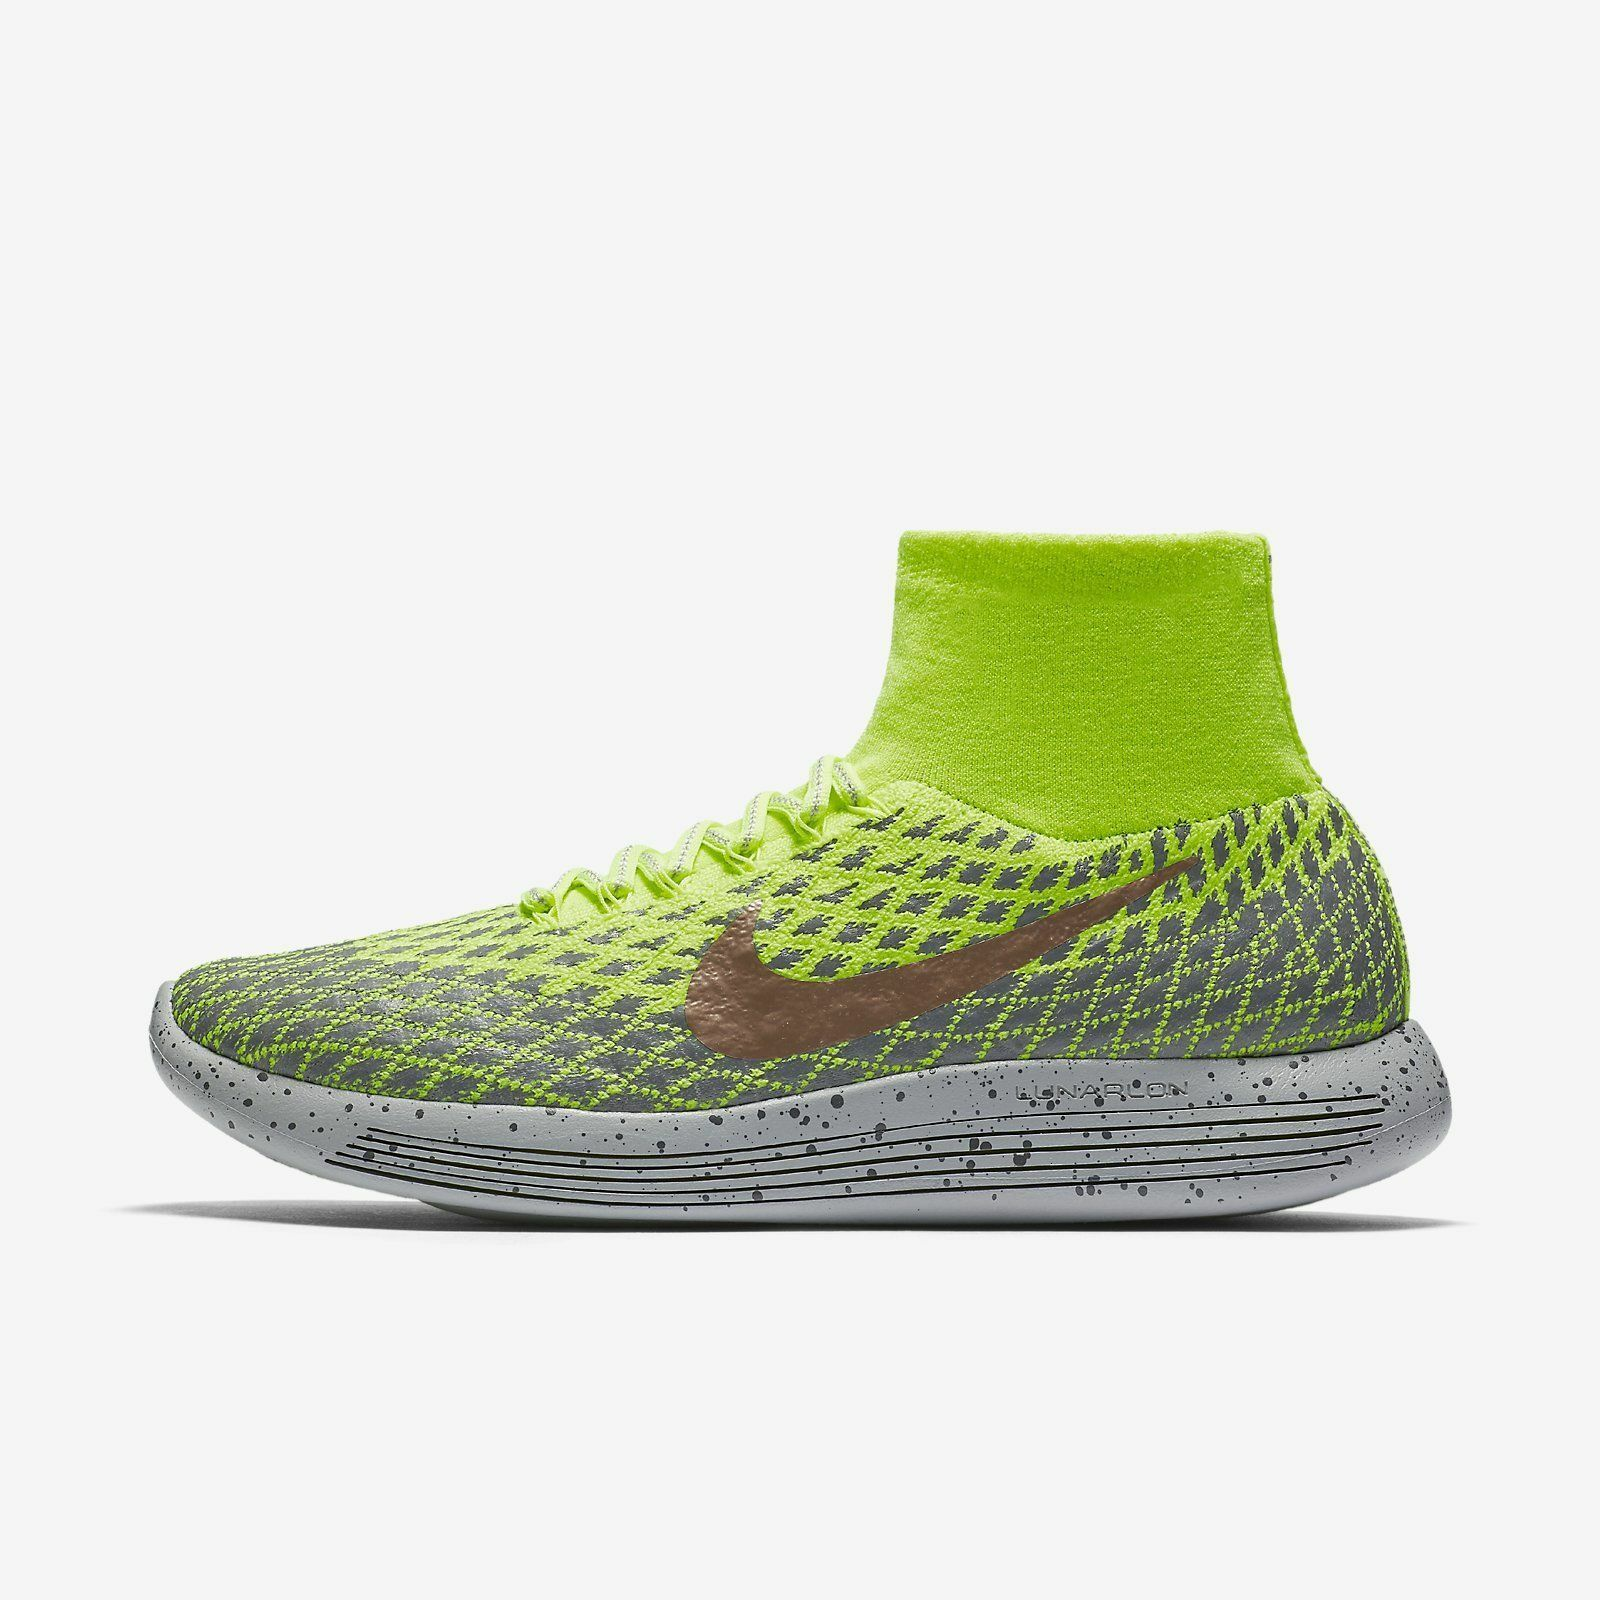 The most popular shoes for men and women Men's Nike LunarEpic Flyknit Shield Running Volt / Metallic Red Sz 9 849664 700